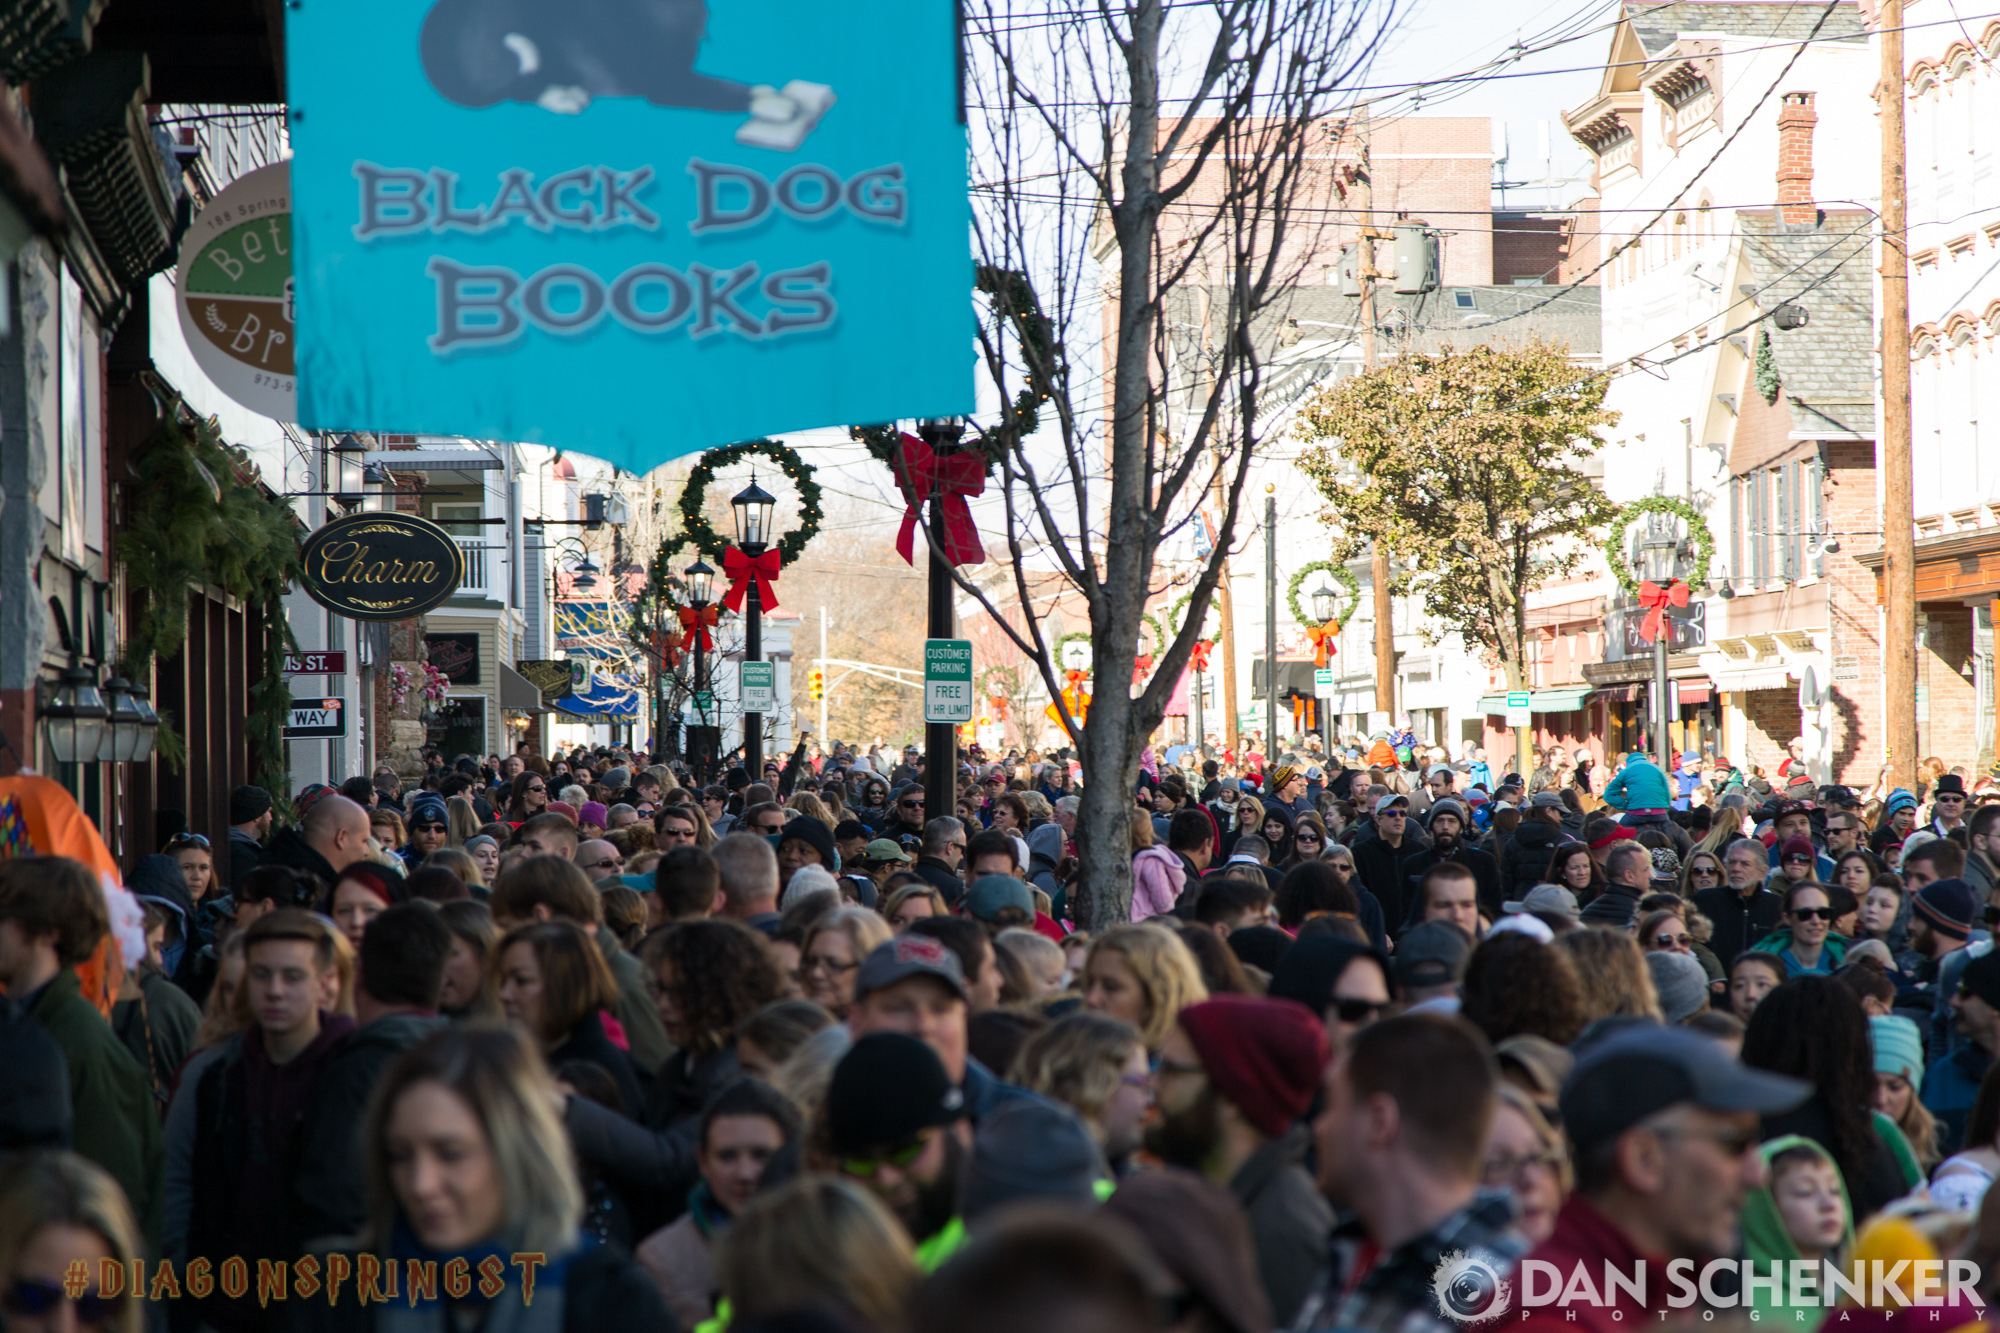 Newton, NJ saw an estimated 35,000 attendees at its Harry Potter-inspired takeover of its downtown shopping district.